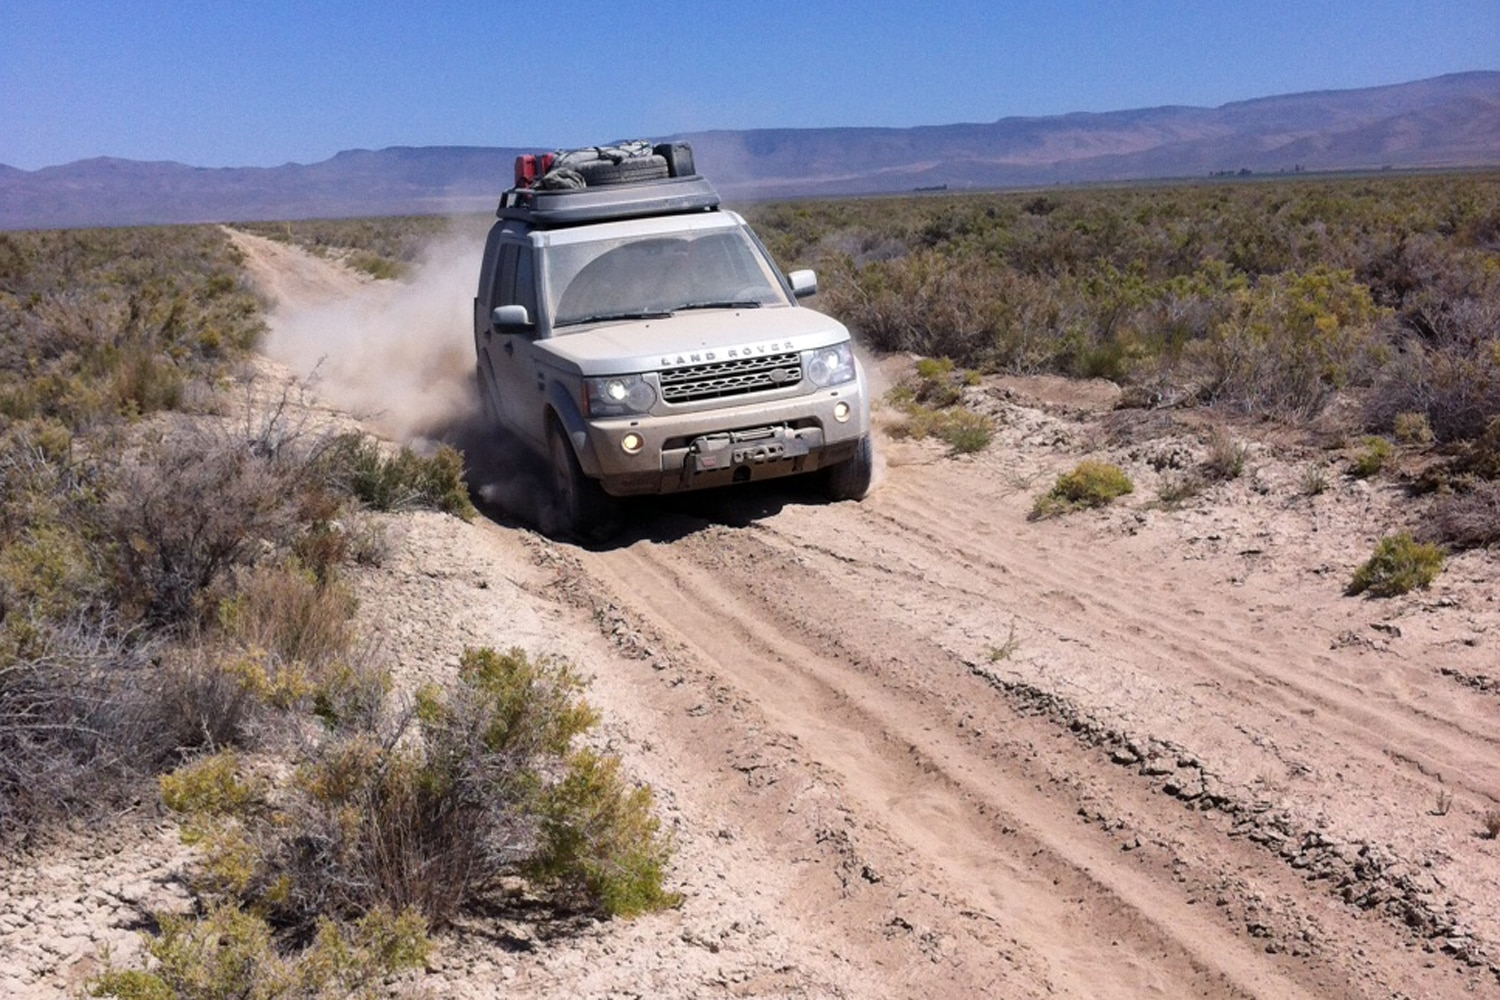 2013 Land Rover LR4 Land Rover Expedition America  7  LR4 moving through desert